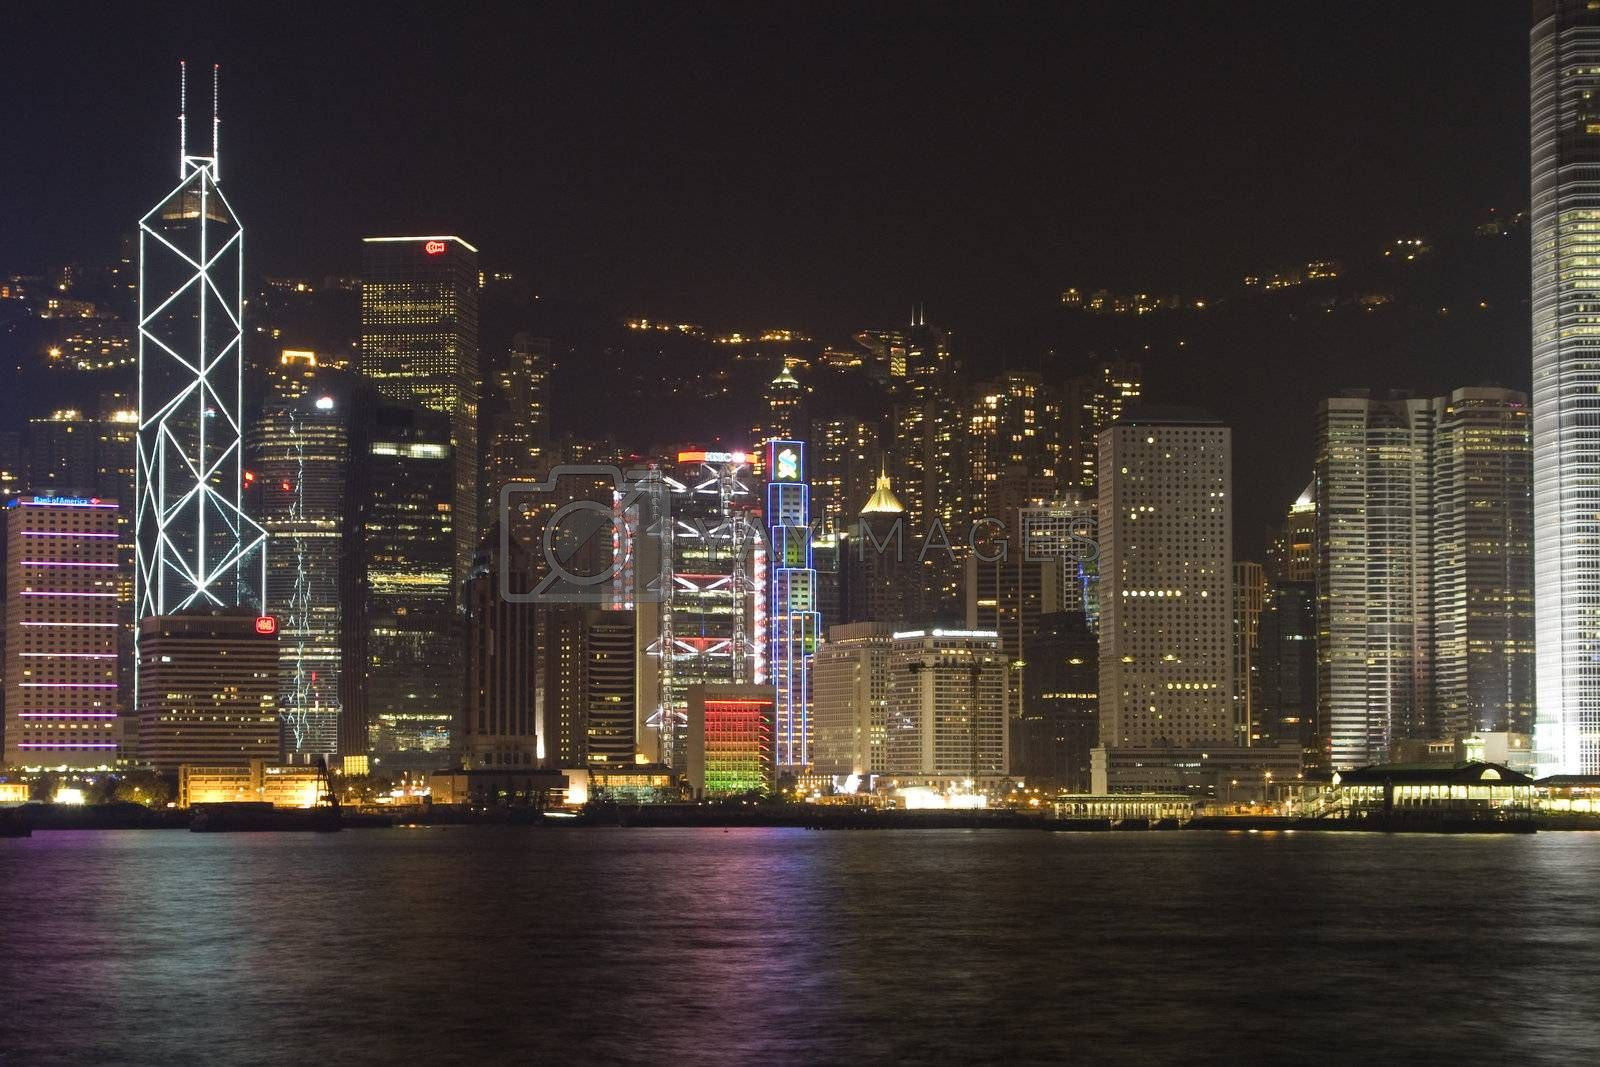 The famous skyline of Hong Kong island, seen from Kowloon.